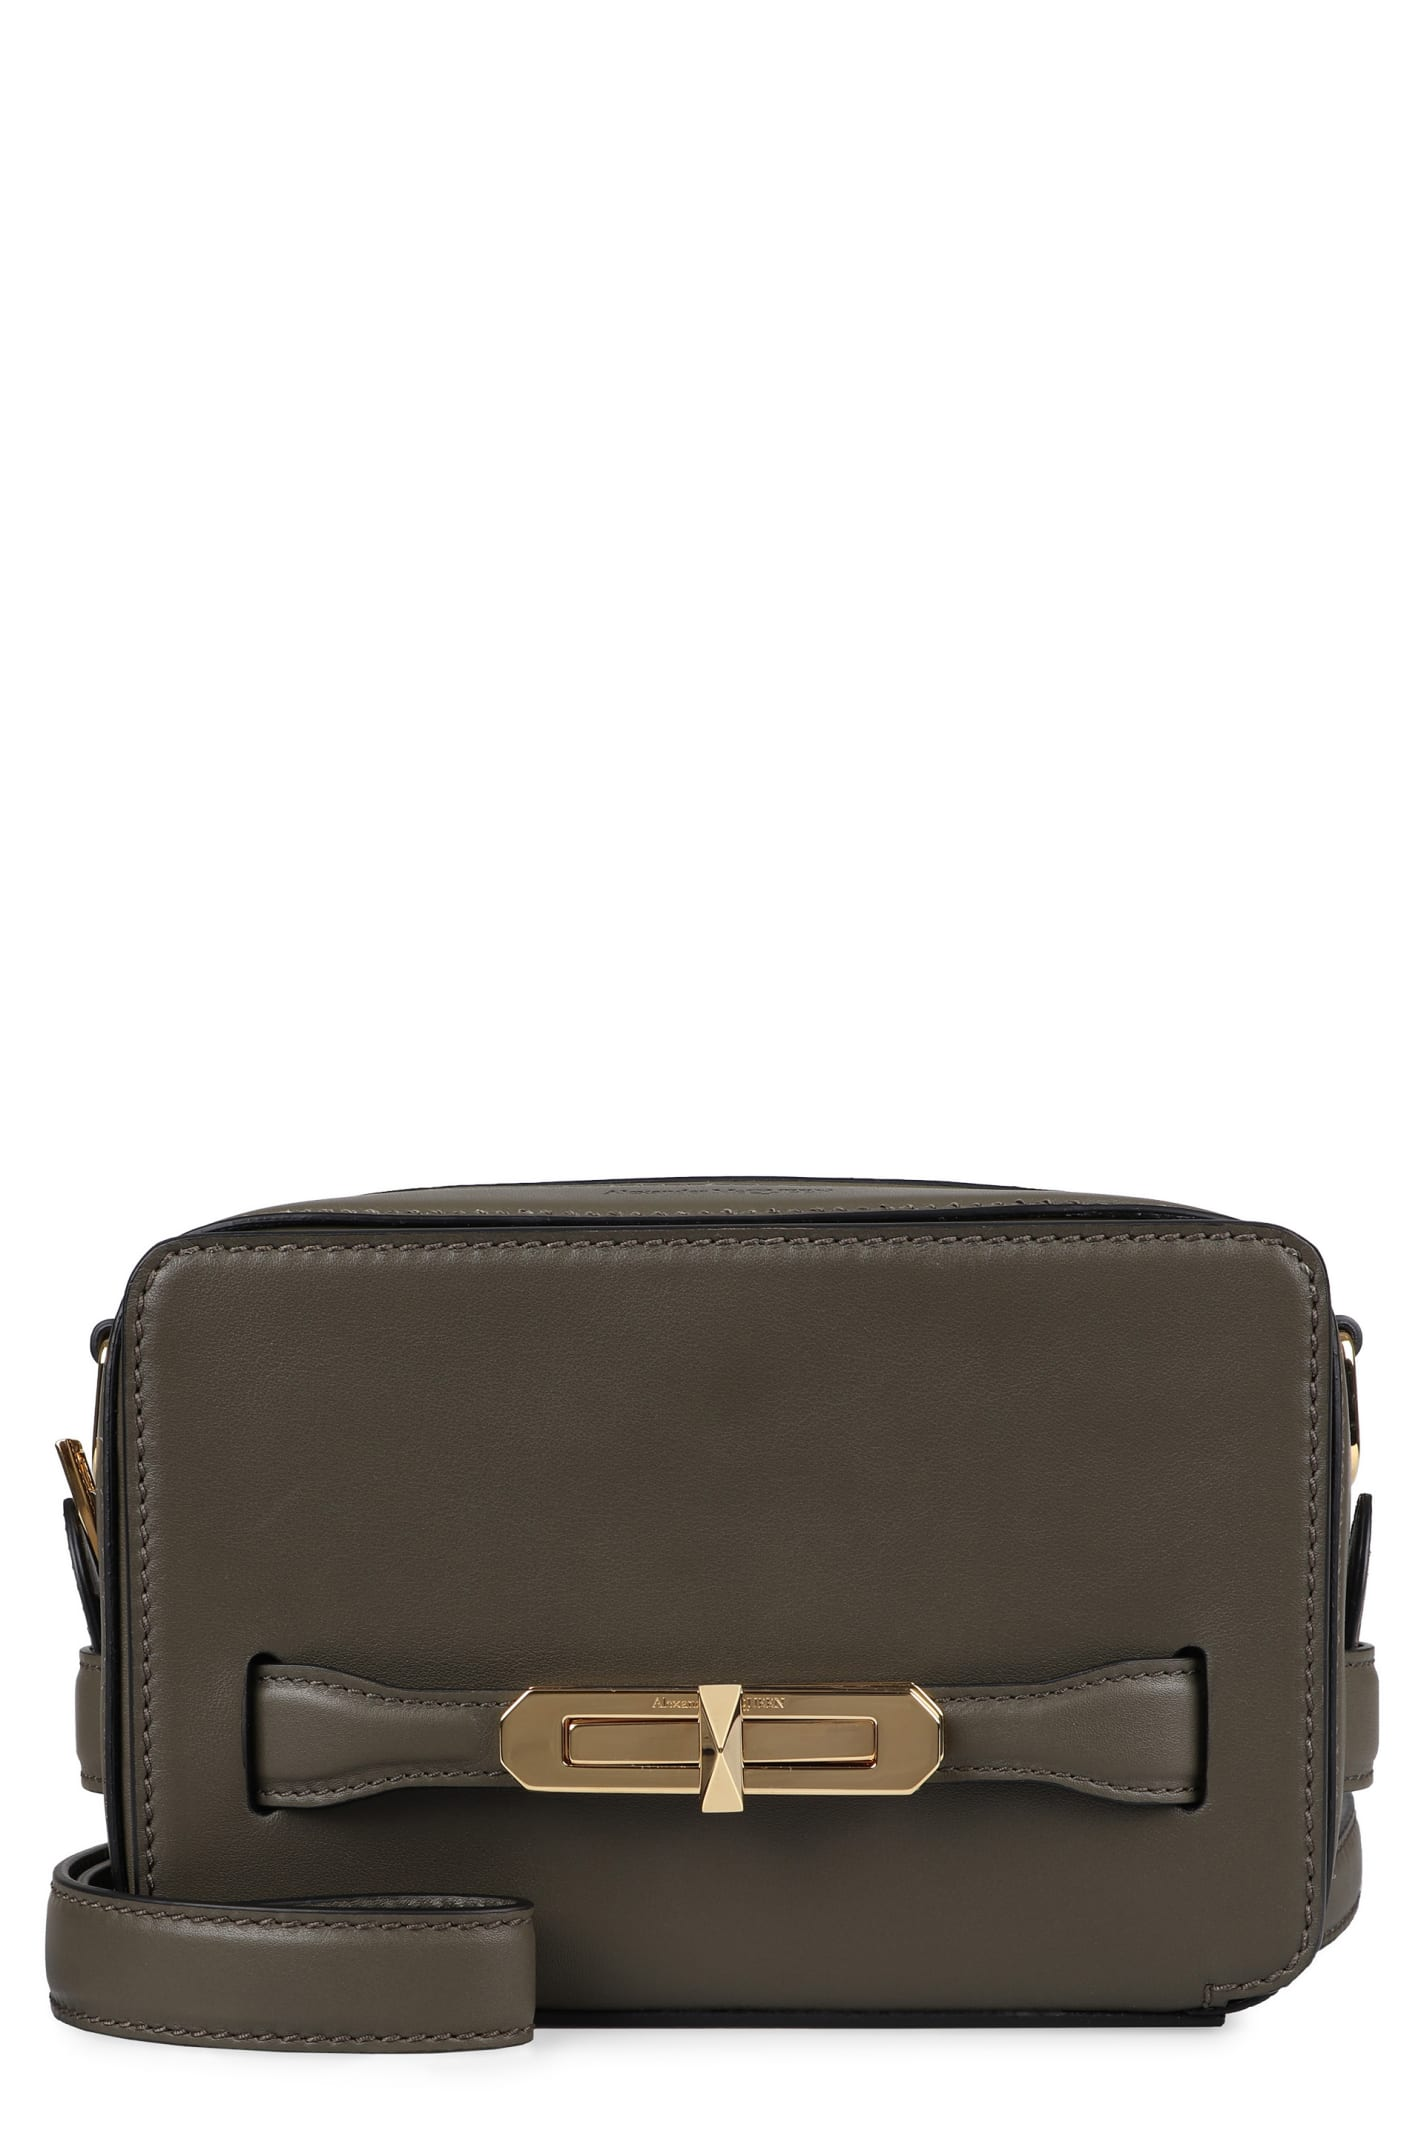 Alexander McQueen The Myth Leather Bag